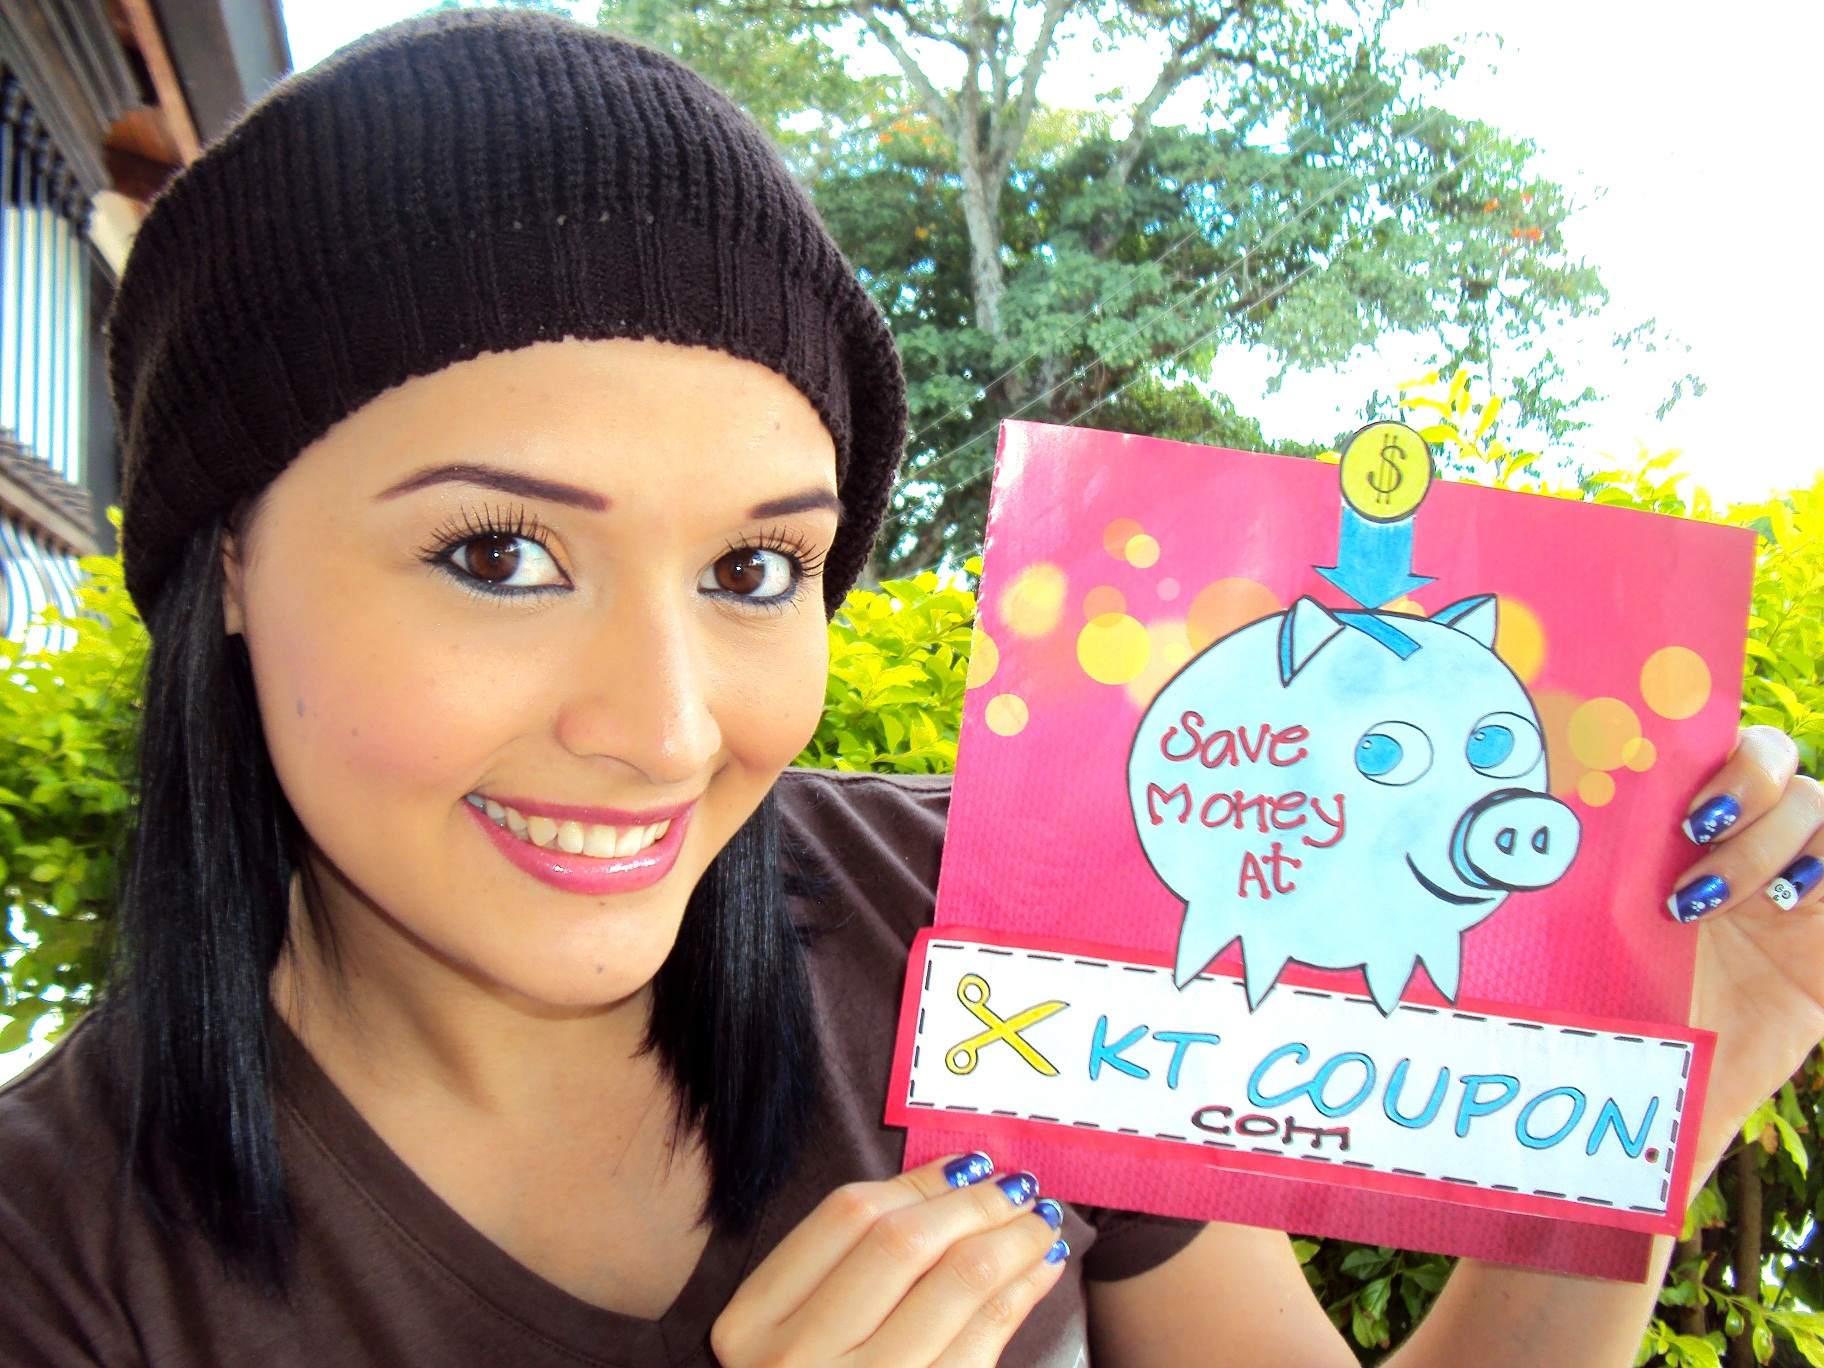 KT Coupon Supporter